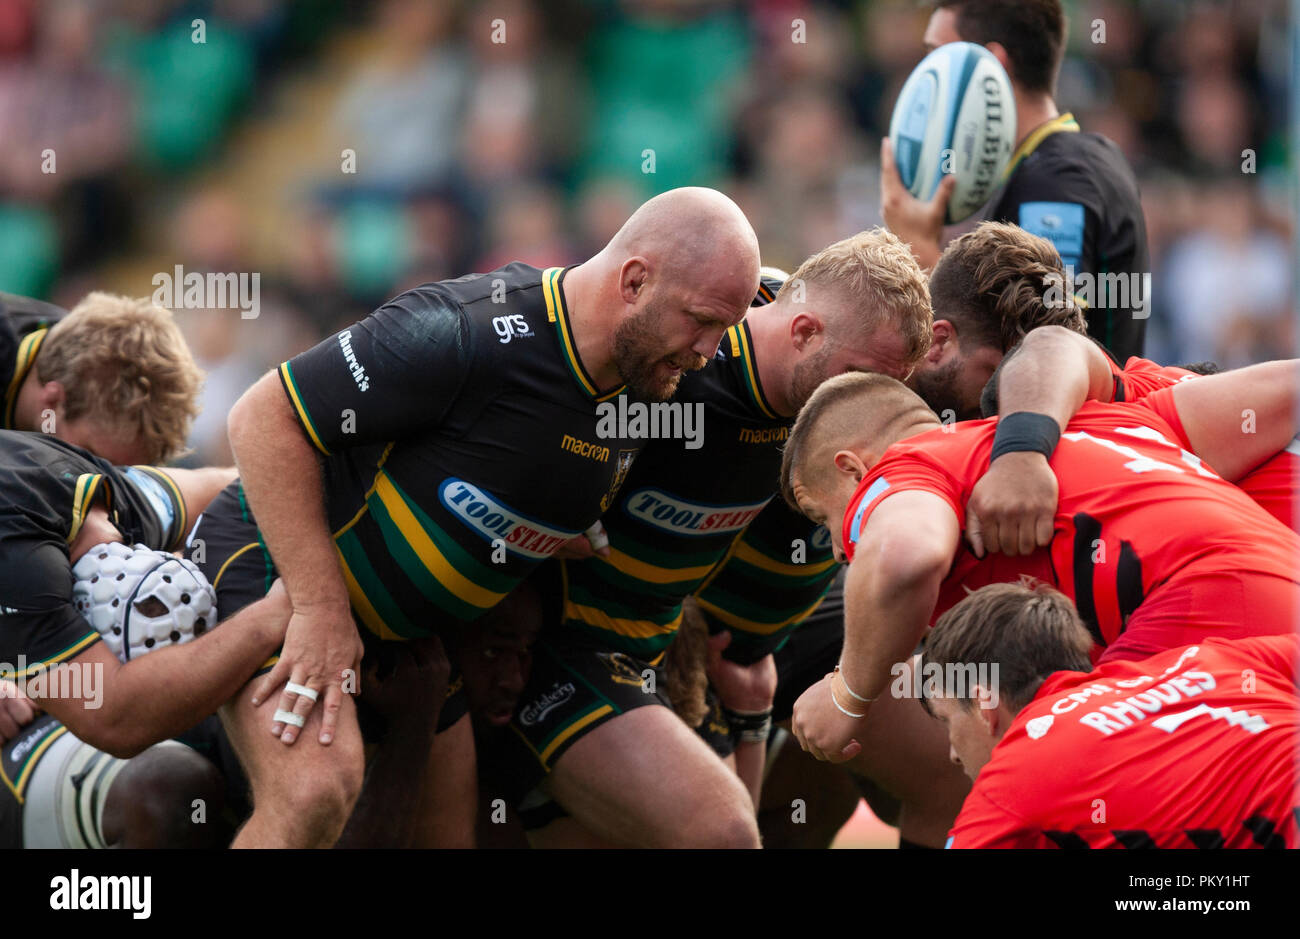 Northampton, UK. 15th September 2018. Ben Franks of Northampton Saints scrums down during the Gallagher Premiership round 3 match between Northampton Saints and Saracens at Franklin's Gardens. Andrew Taylor/Alamy Live News - Stock Image